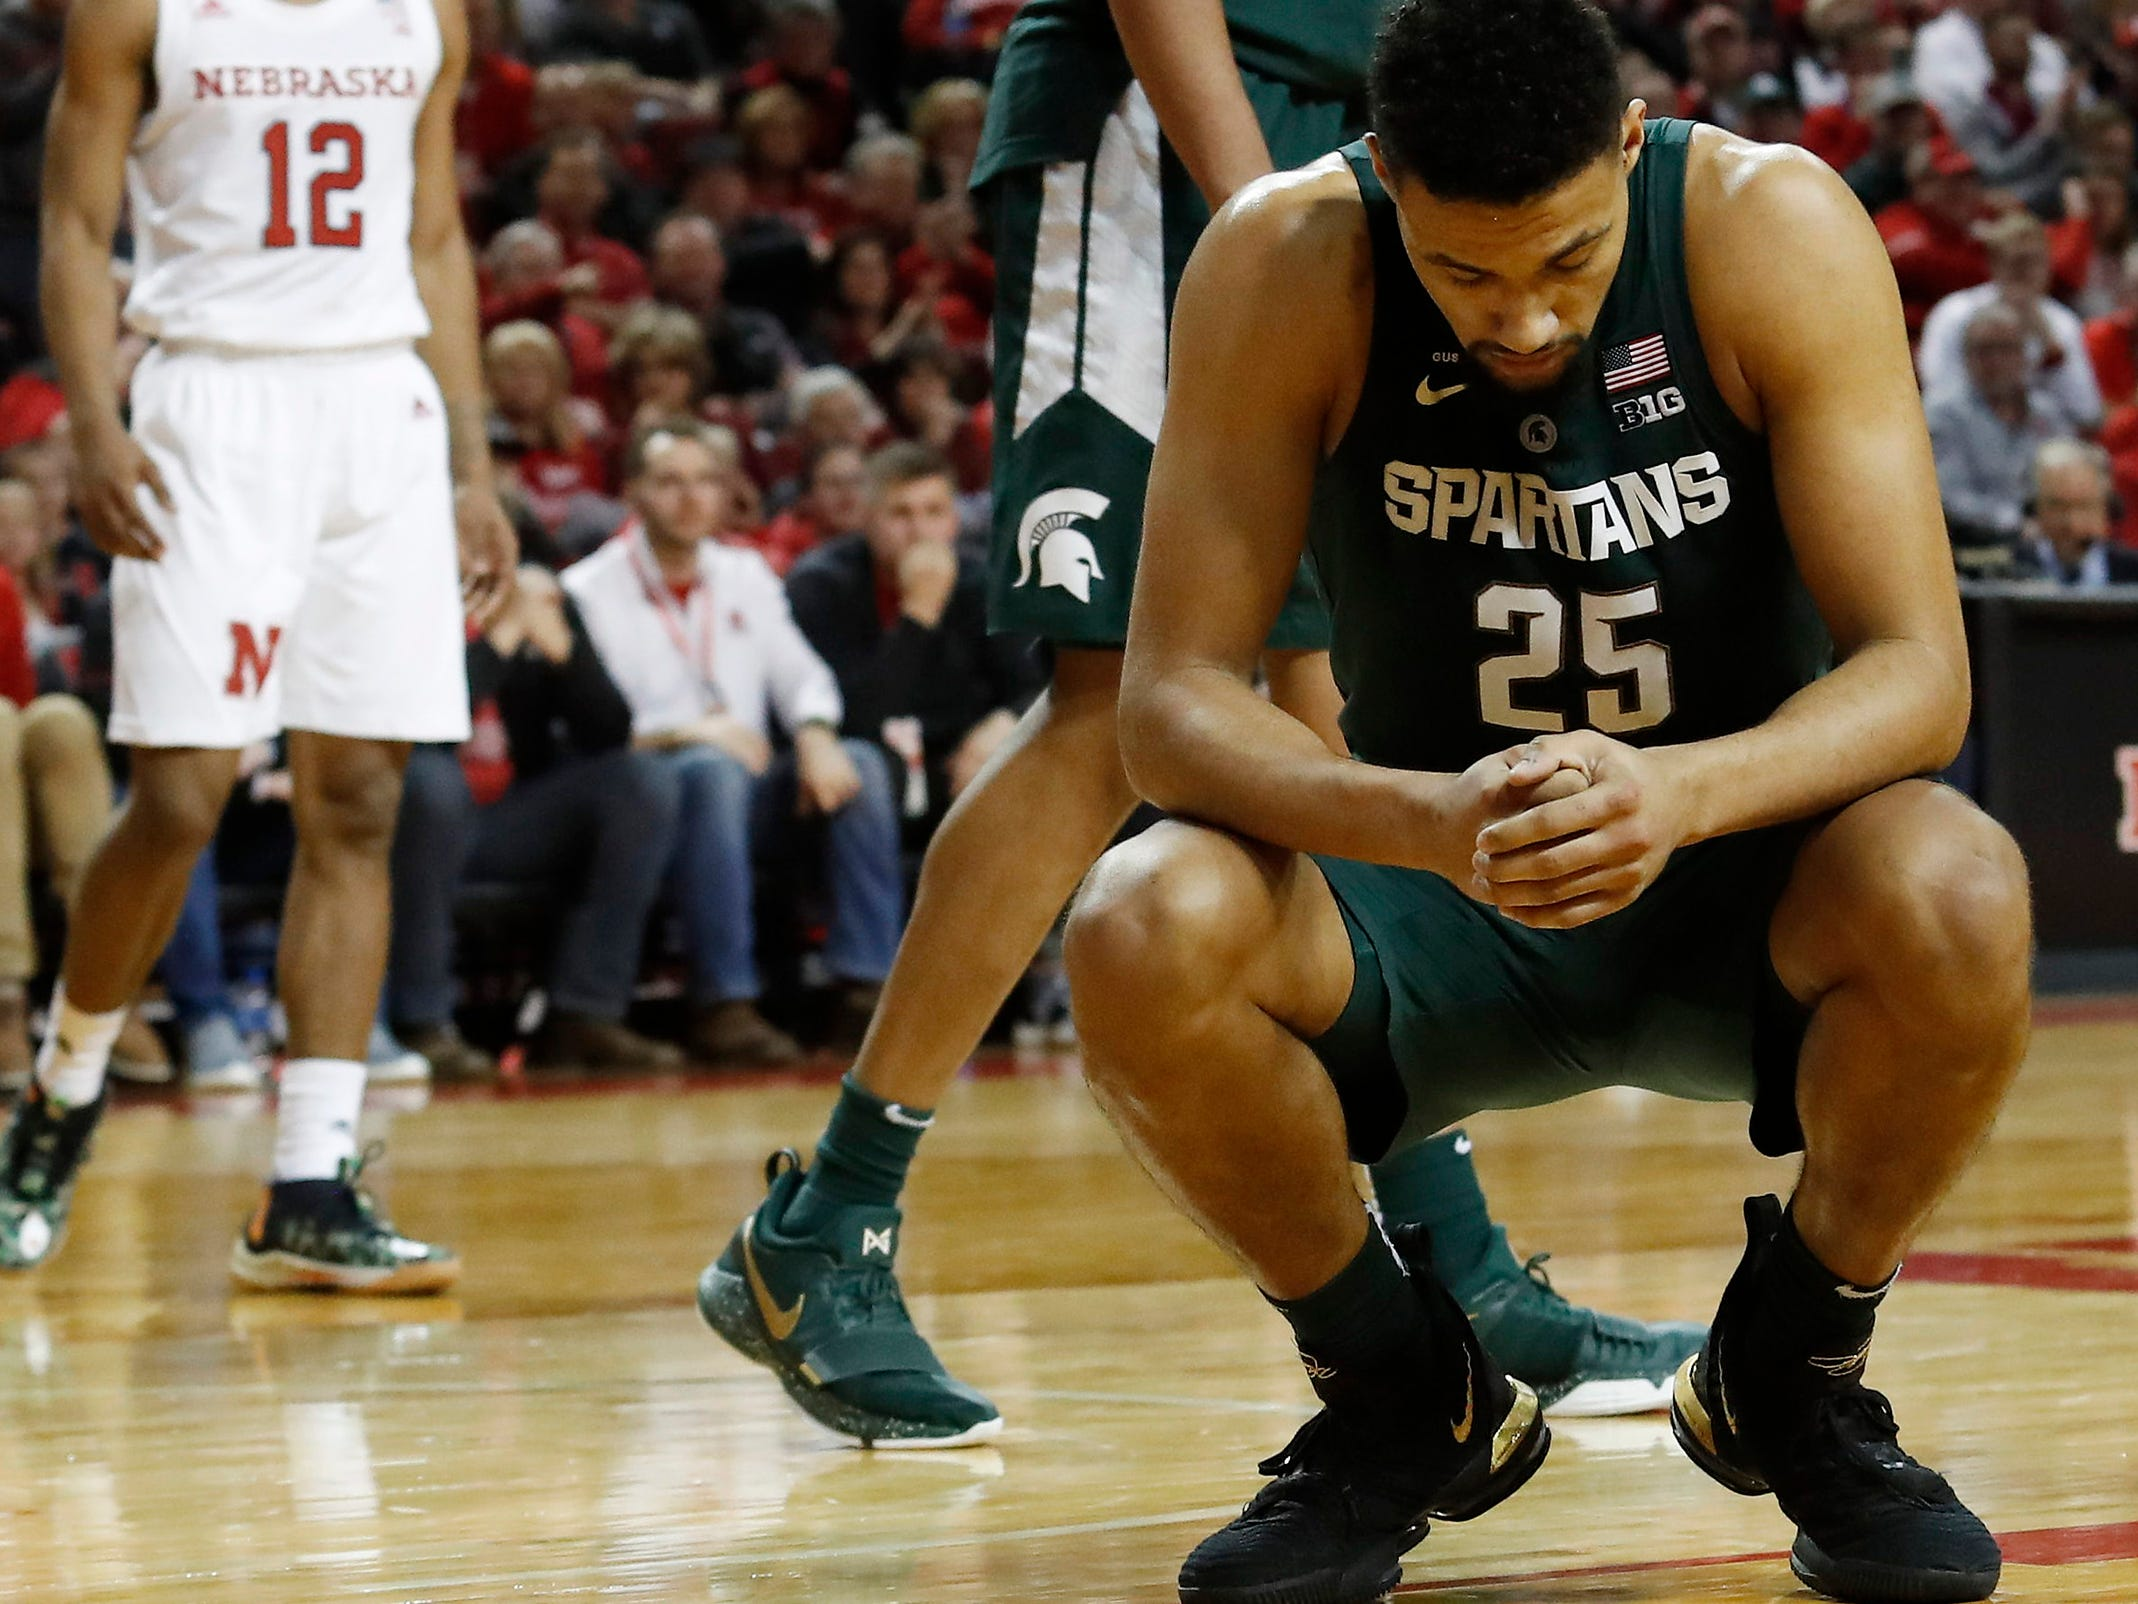 Michigan State Spartans forward Kenny Goins (25) reacts after a foul against the Nebraska Cornhuskers in the second half at Pinnacle Bank Arena. Michigan State won 70-64 on Thursday, Jan. 17, 2019.